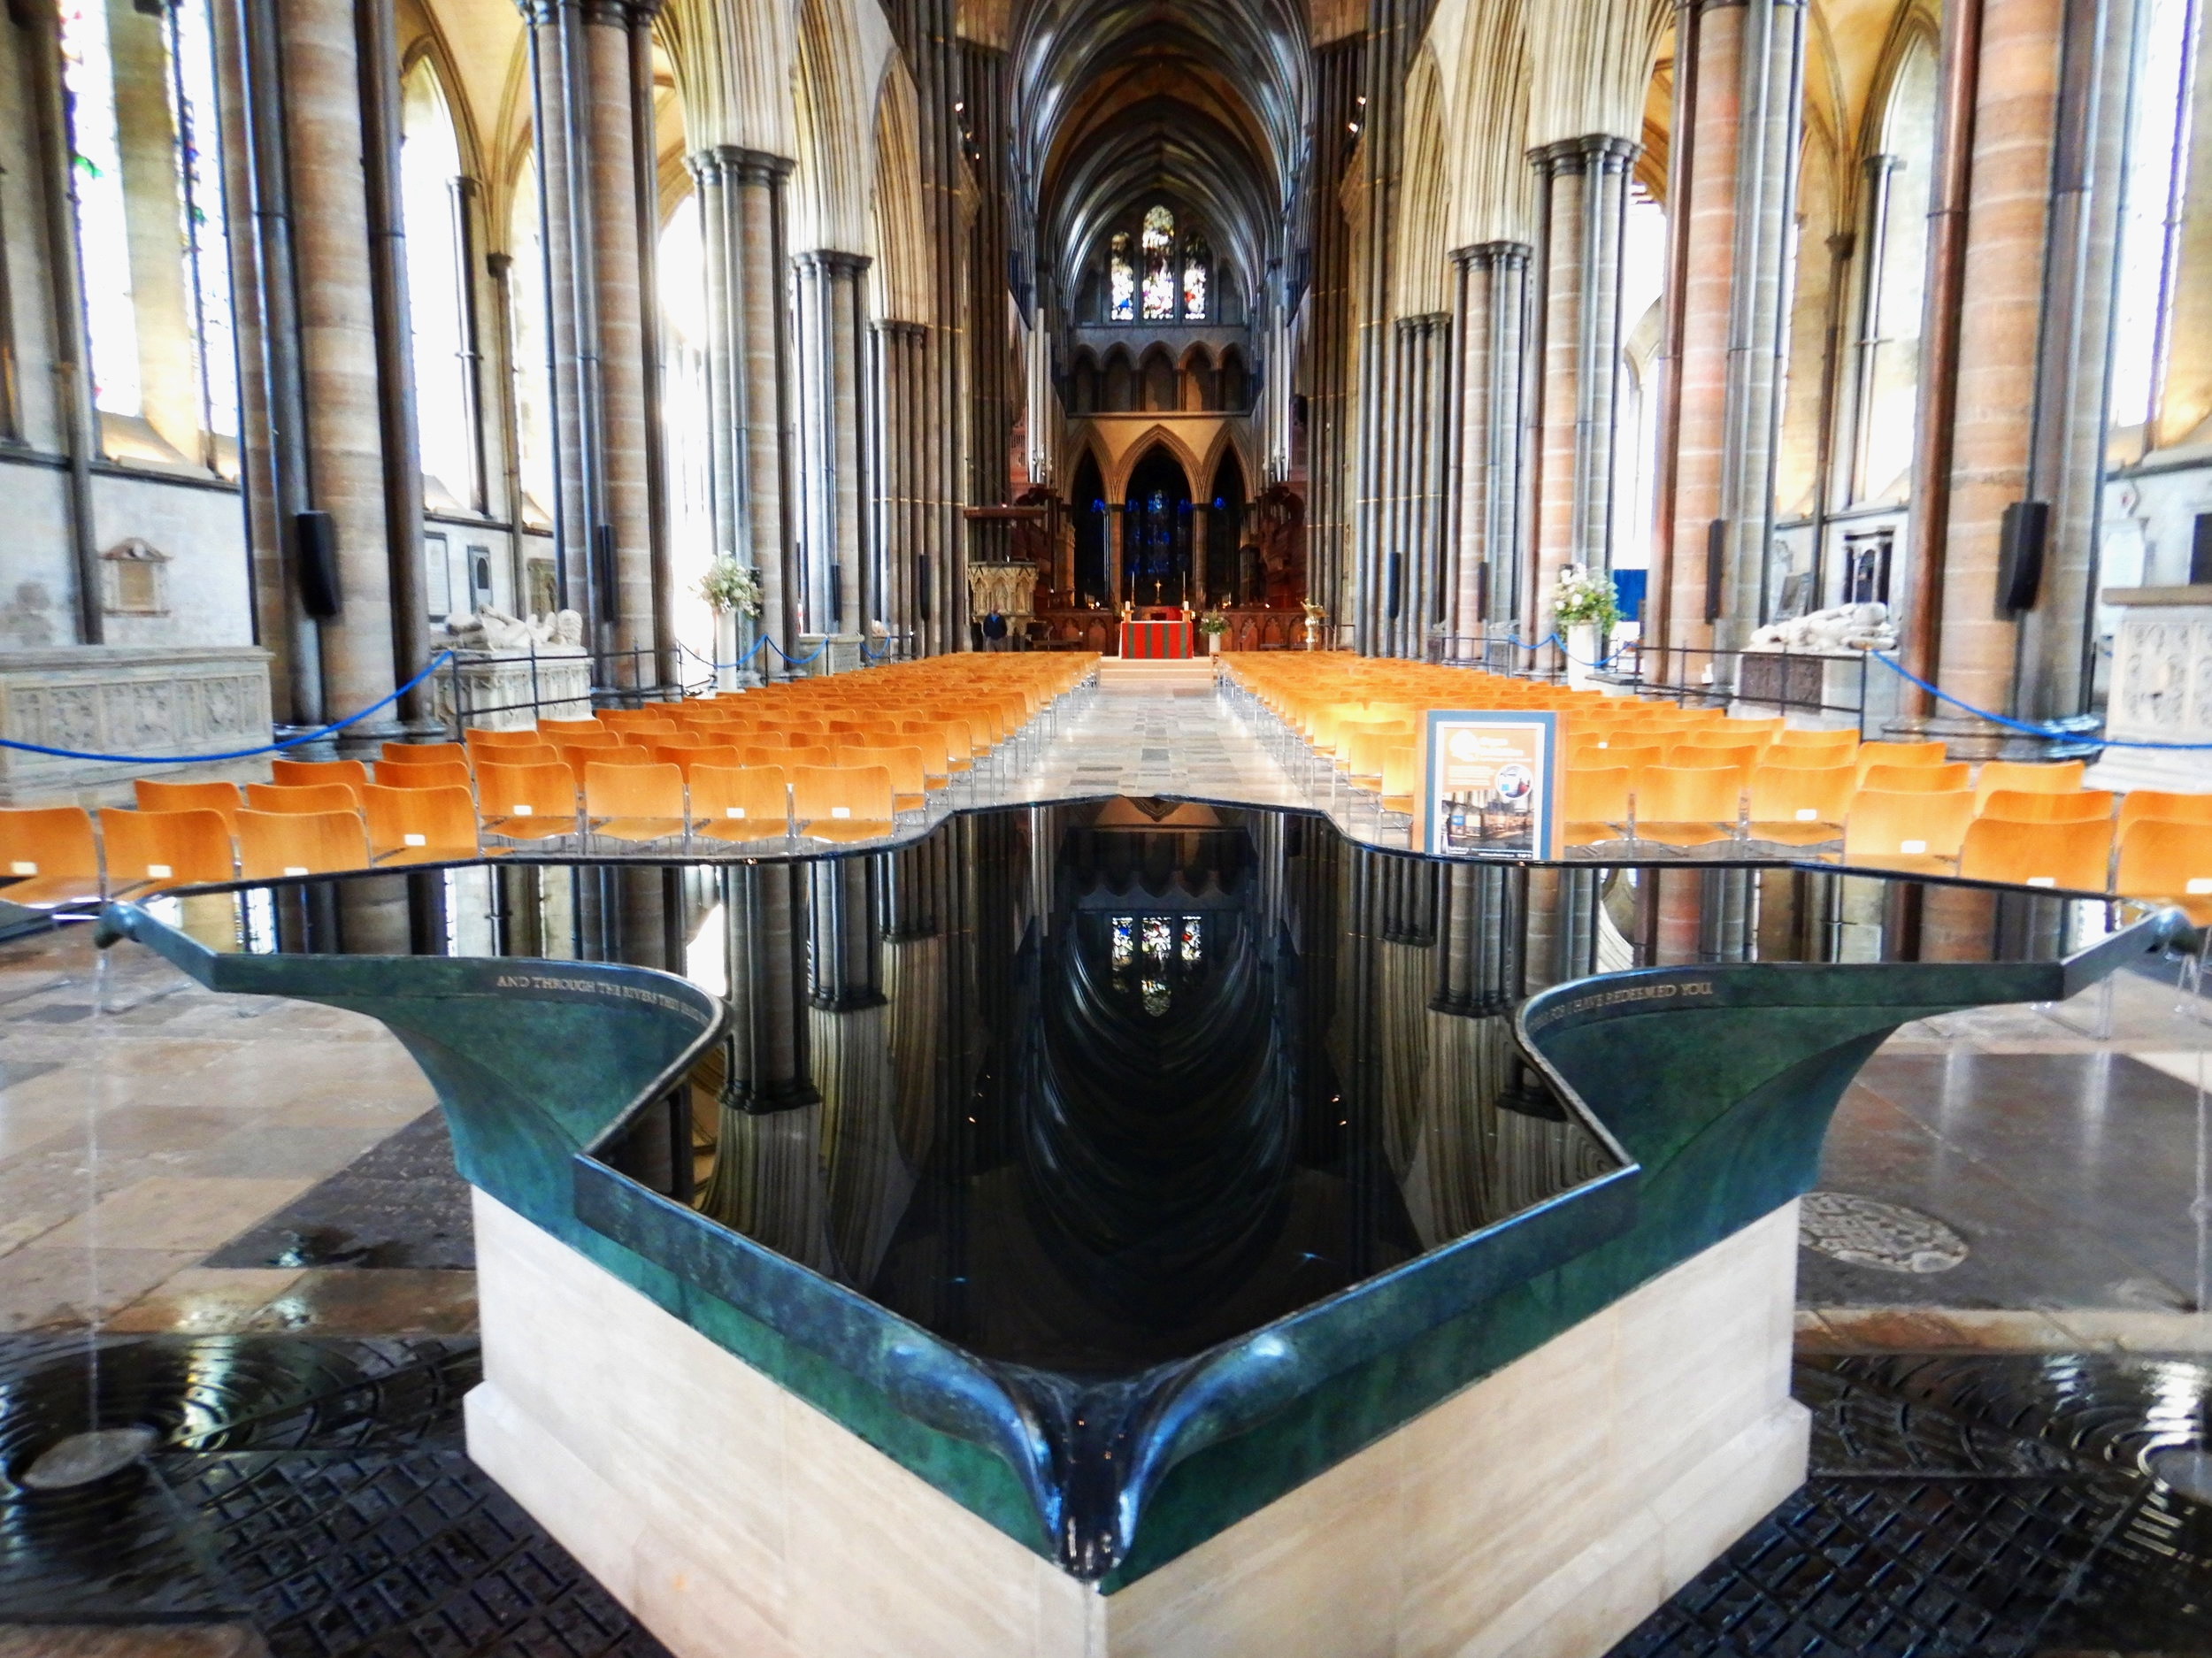 The font at Salisbury Cathedral